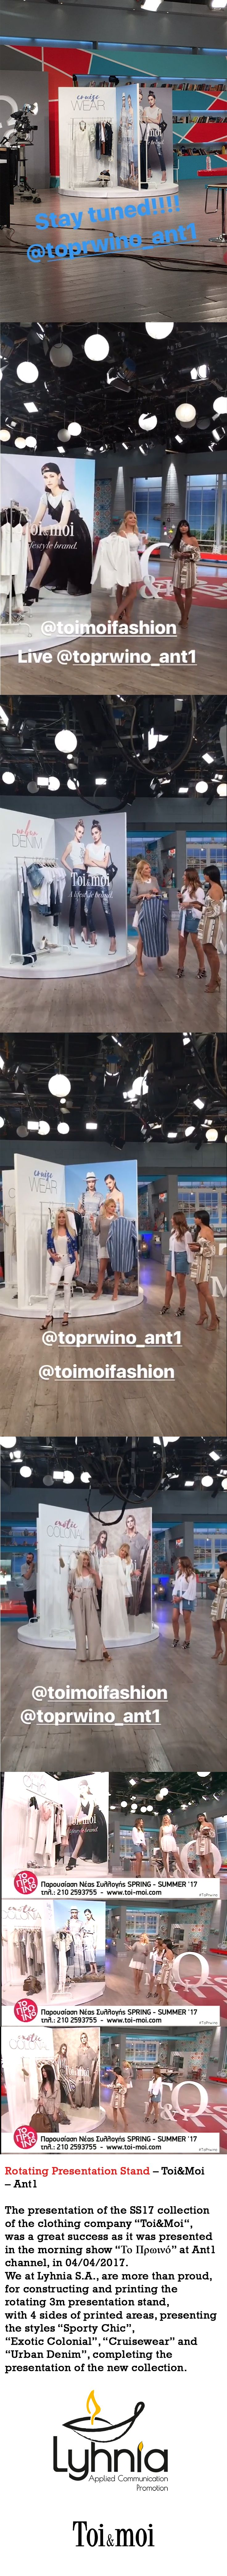 """Rotating Presentation Stand – Toi&Moi  Ant1  The presentation of the SS17 collection of the clothing company """"Toi&Moi"""", was a great success as it was presented in the morning show """"Το Πρωινό"""" at Ant1 channel, in 04/04/2017. We at Lyhnia S.A., are more than proud, for constructing and printing the rotating 3m presentation stand, with 4 sides of printed areas, presenting the styles """"Sporty Chic"""", """"Exotic Colonial"""", """"Cruisewear"""" and  """"Urban Denim"""", completing the presentation of the new…"""